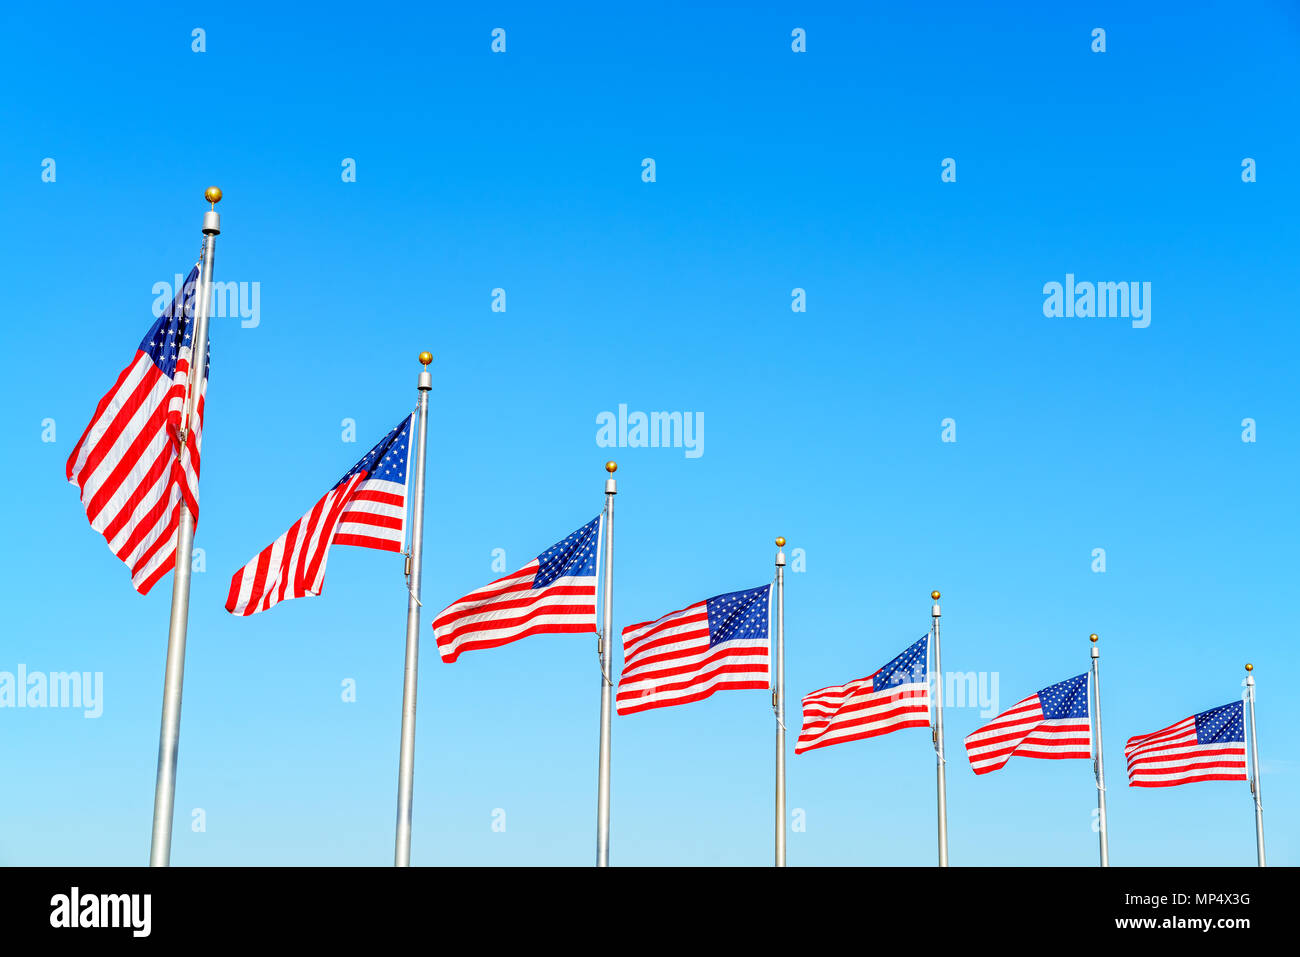 Flags of the United States - Stock Image